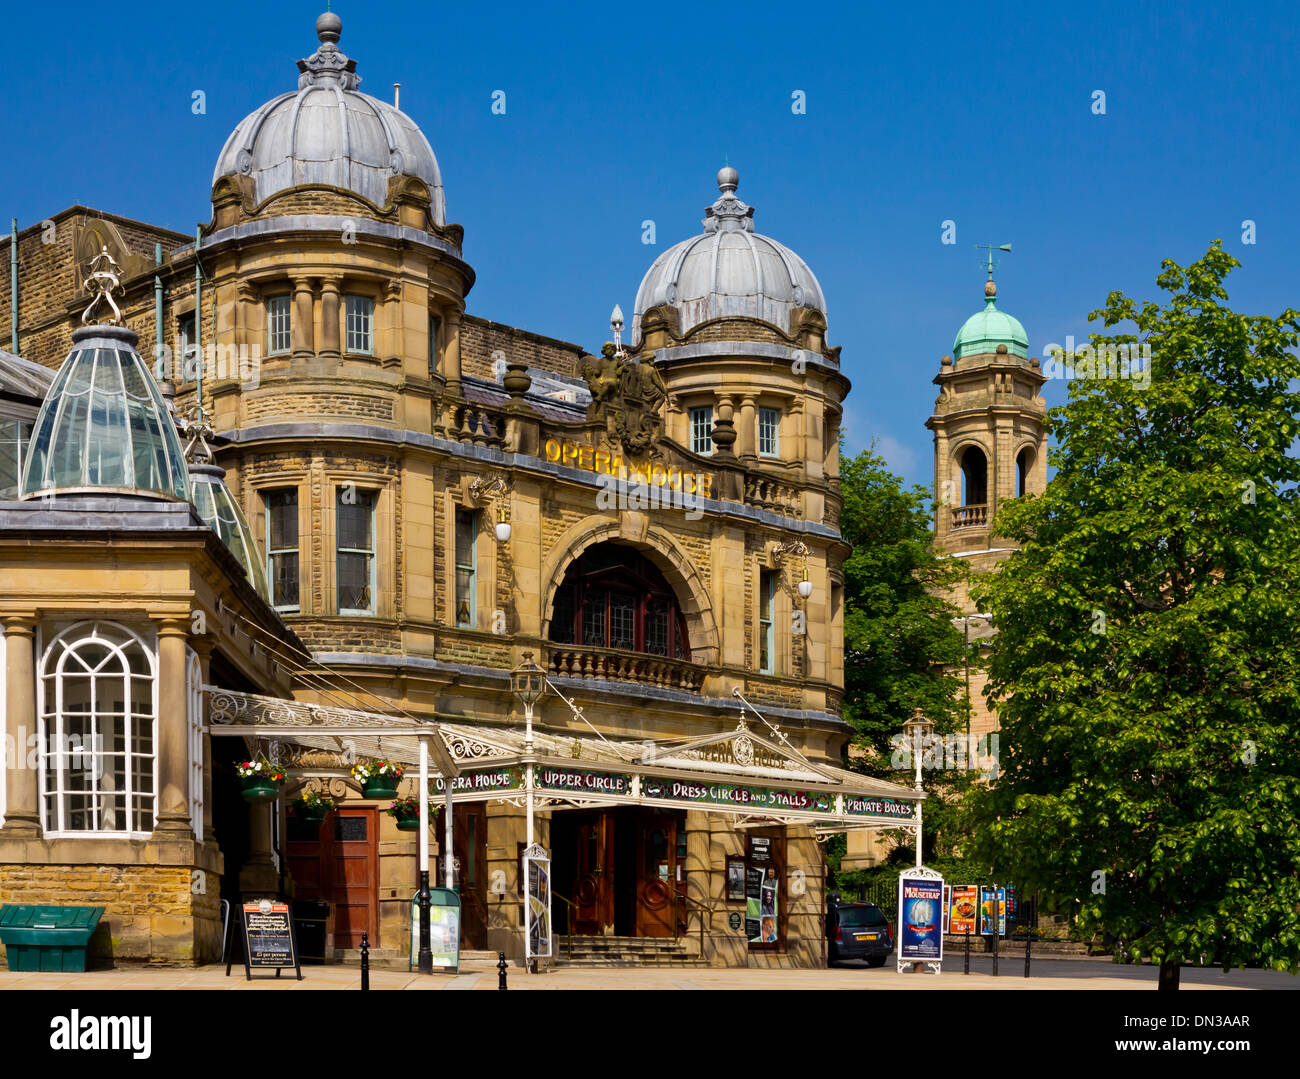 Exterior of Buxton Opera House Peak District Derbyshire England UK built 1903 and designed by theatre architect Frank Matcham - Stock Image